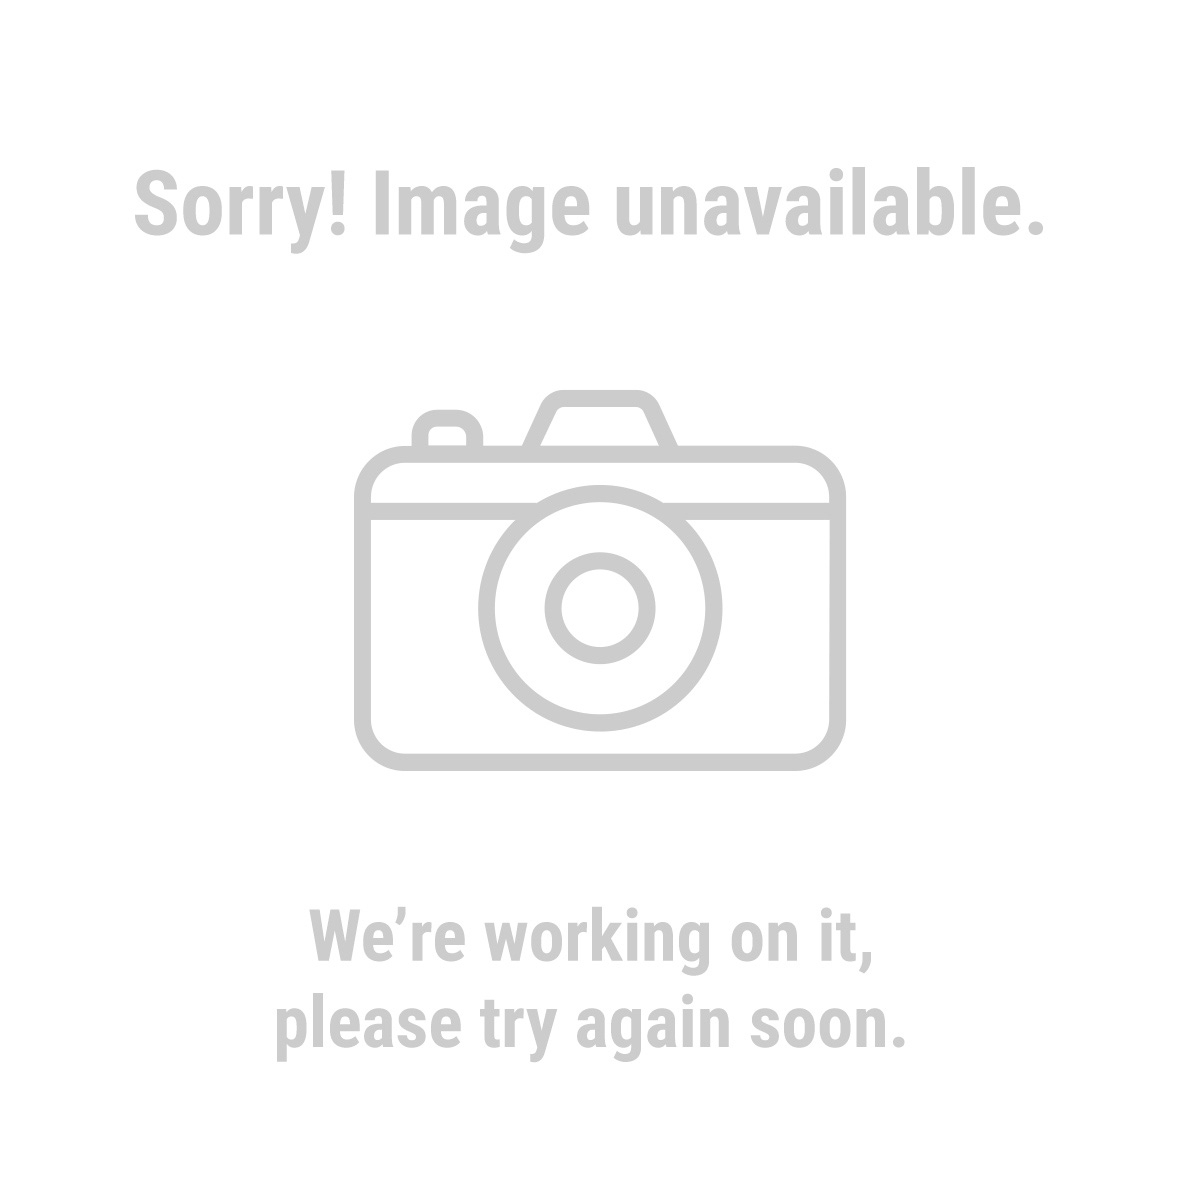 Pittsburgh 69352 5 Piece Pliers Set